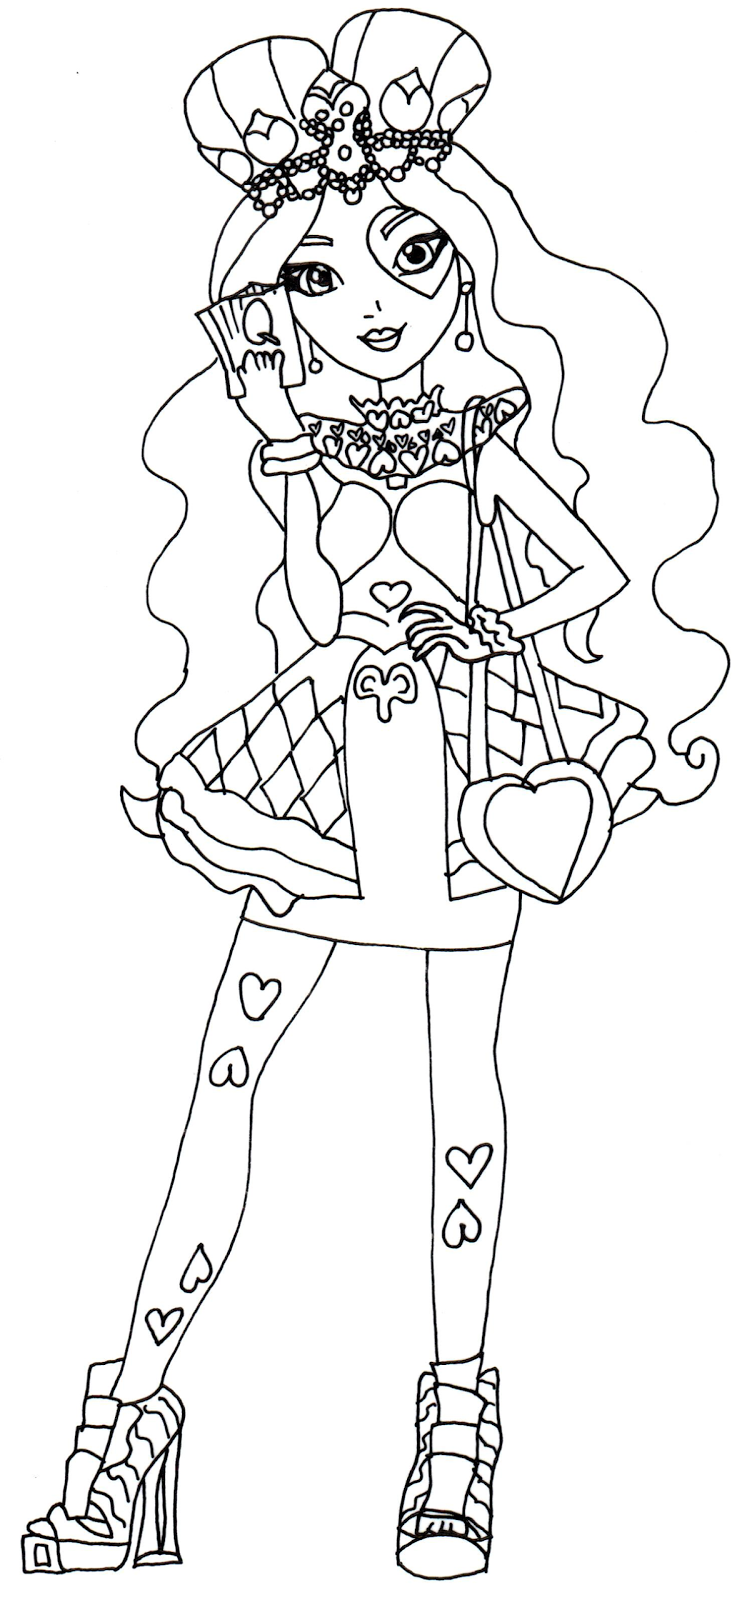 coloring pages 28 october attack - photo#13